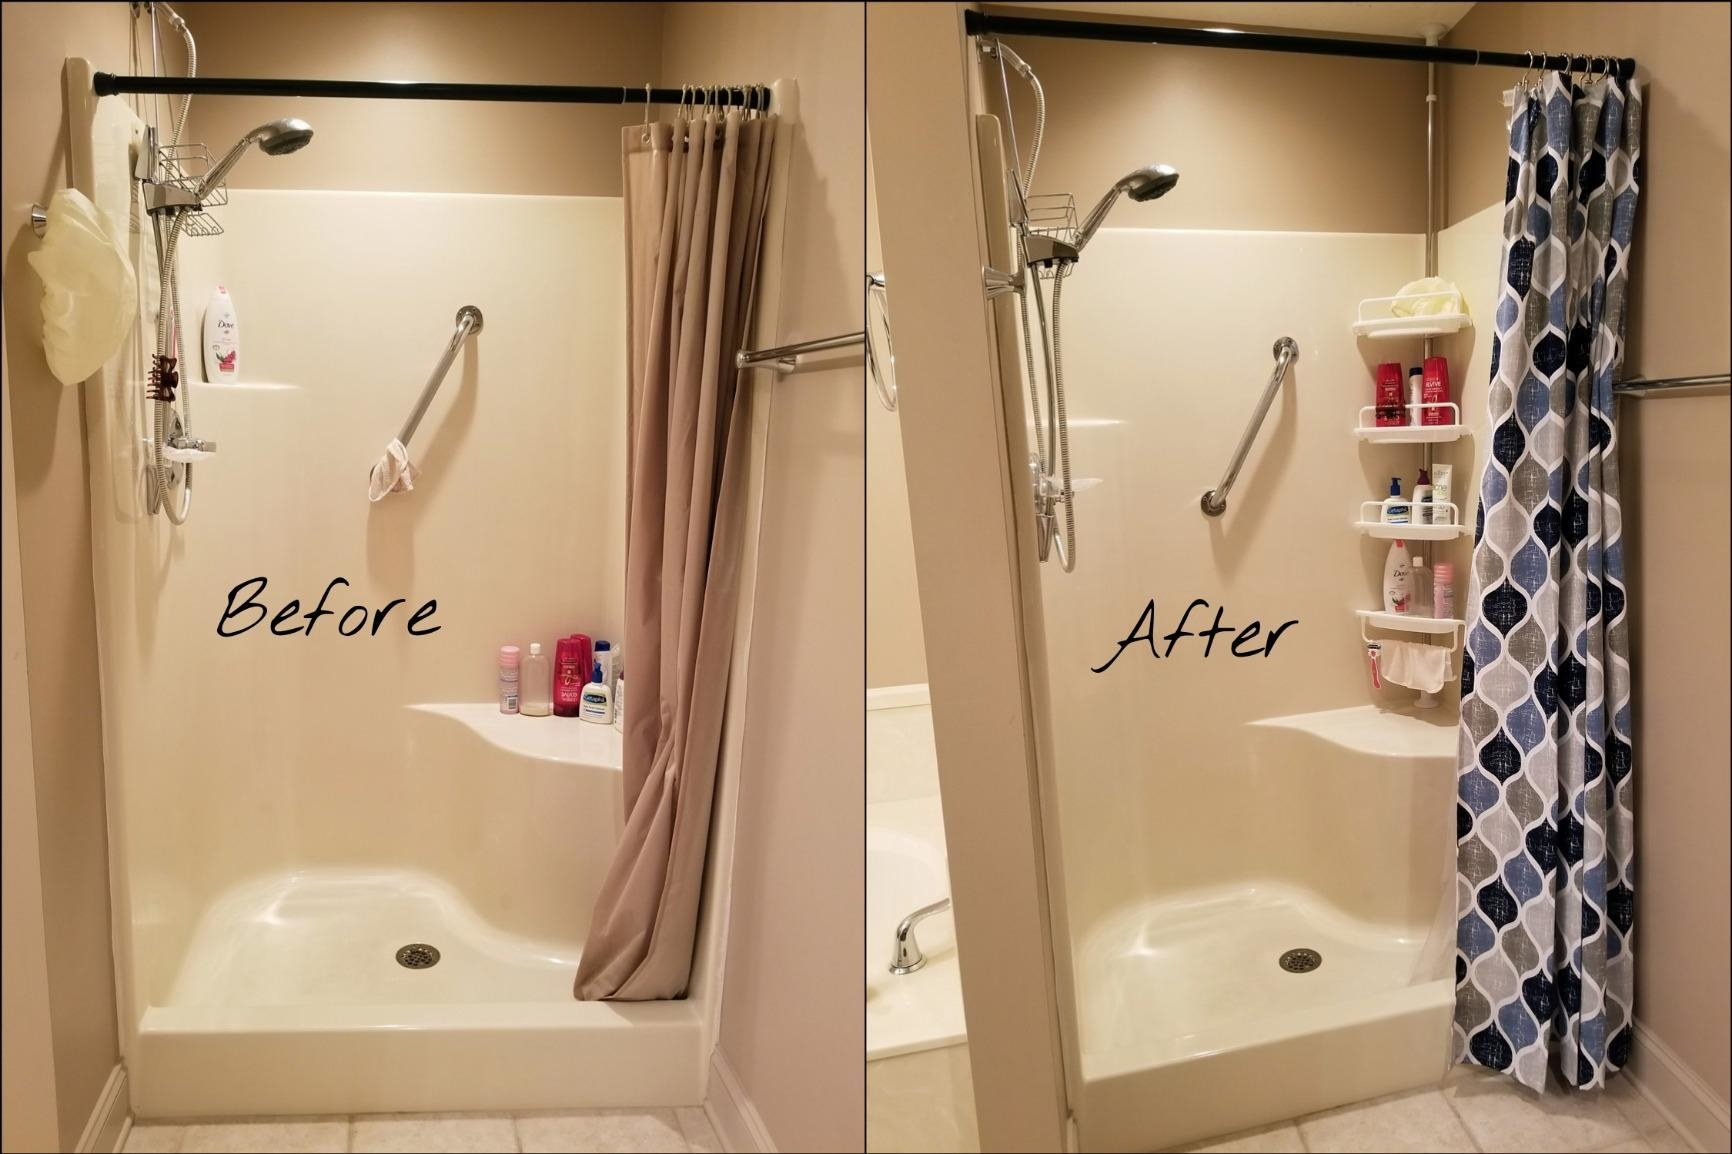 Reviewer's before-and-after results showing organized bathroom after using shelving unit